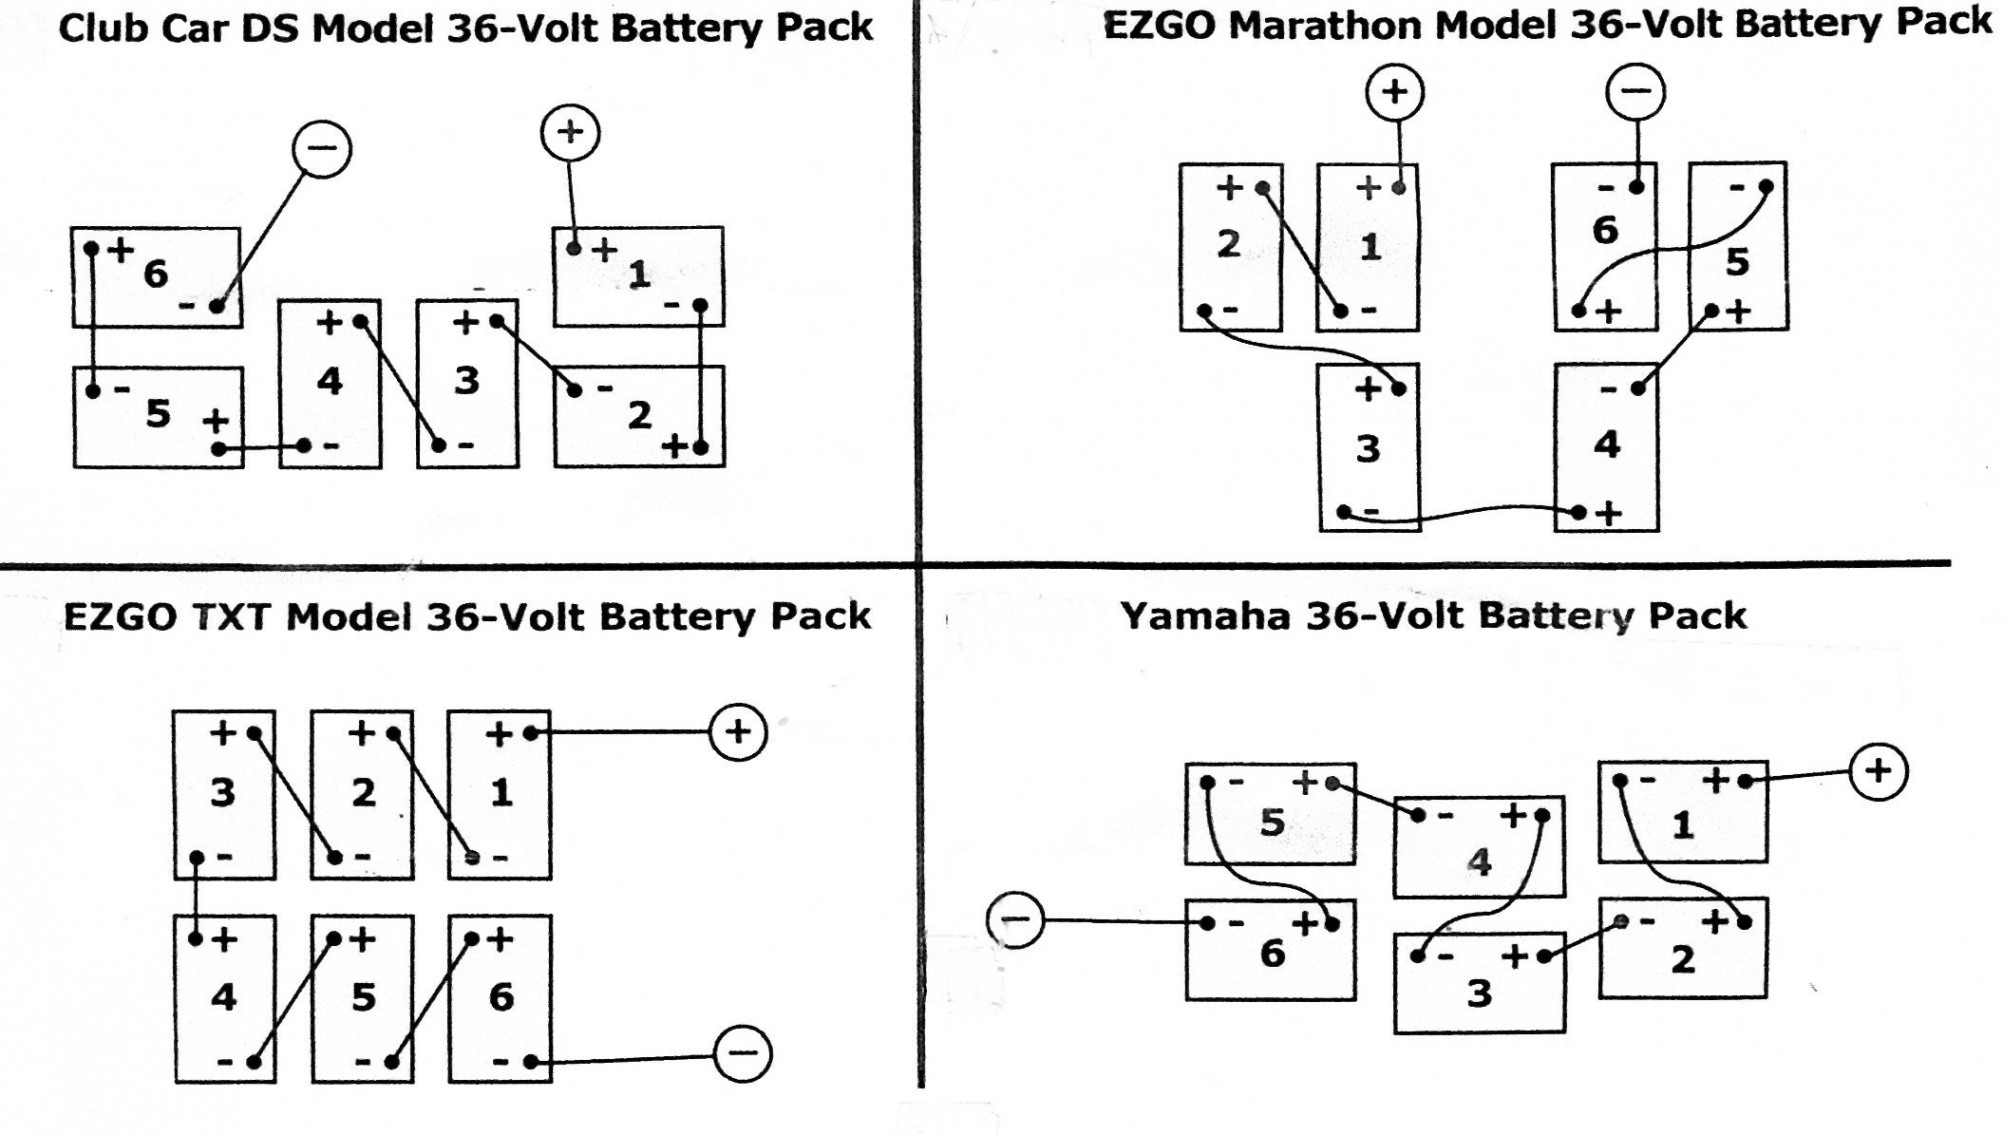 yamaha golf cart battery wiring diagram Download-Club Car Wiring Diagram 36 Volt – Wiring Diagrams For Yamaha Golf Carts Refrence Ez Golf 8-i